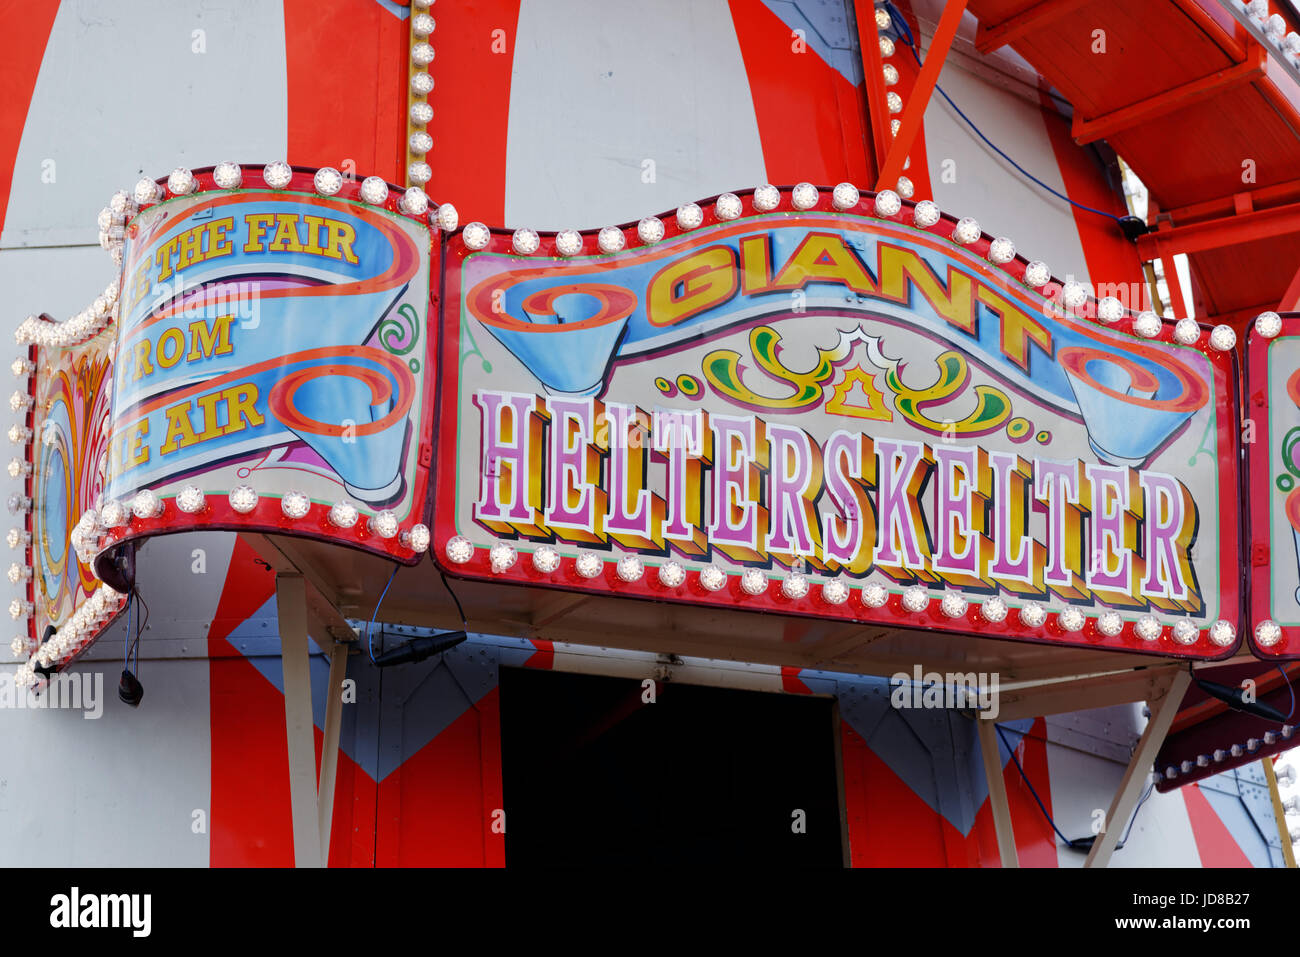 A traditional Helter Skelter on Clacton Pier in Essex, England - Stock Image